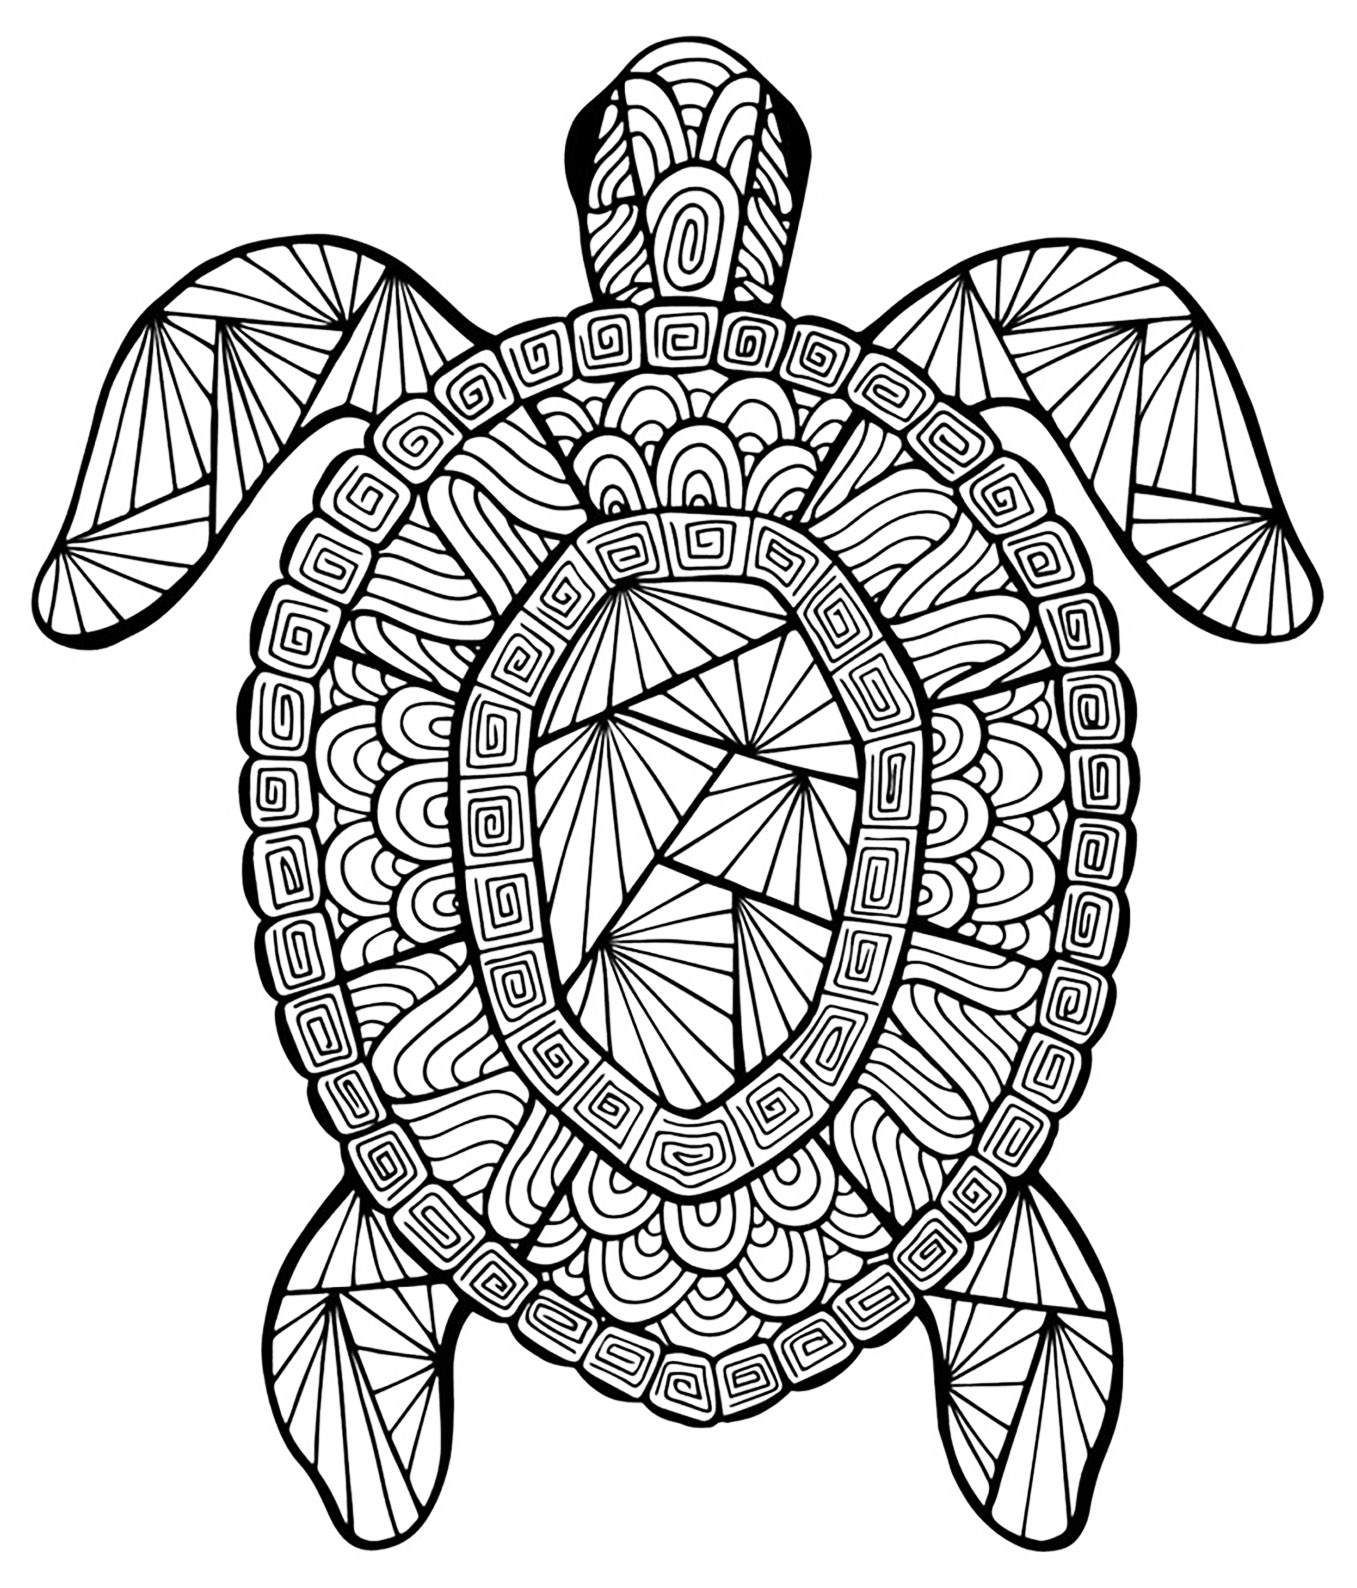 turtle printable coloring pages sea turtle coloring pages for adults at getcoloringscom turtle coloring pages printable